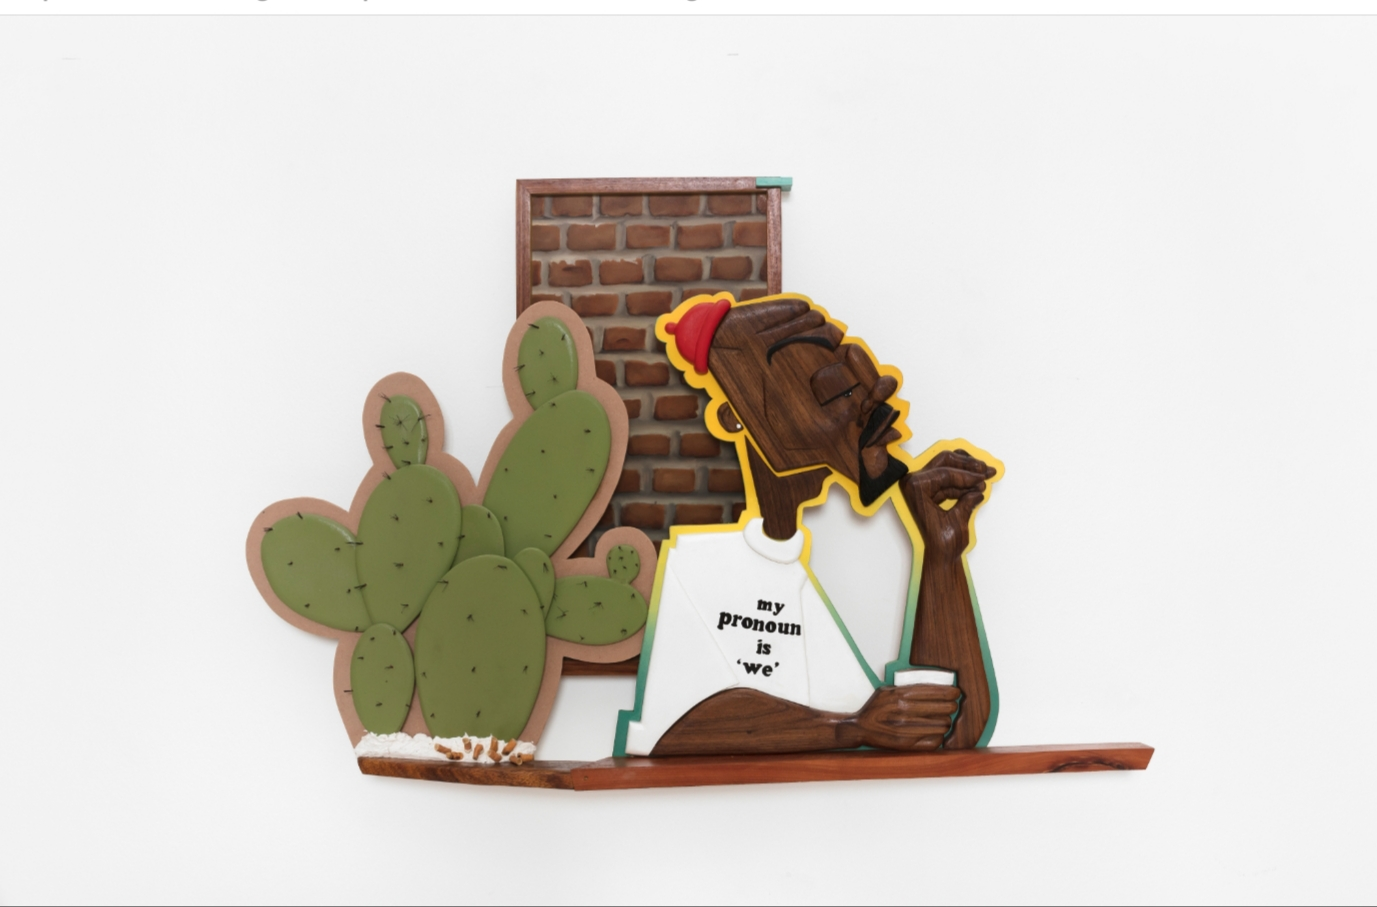 """Dada Khanyisa, """"What a Prick"""", 2019, acrylic and mixed media on wood. Courtesy of Stevenson Gallery"""